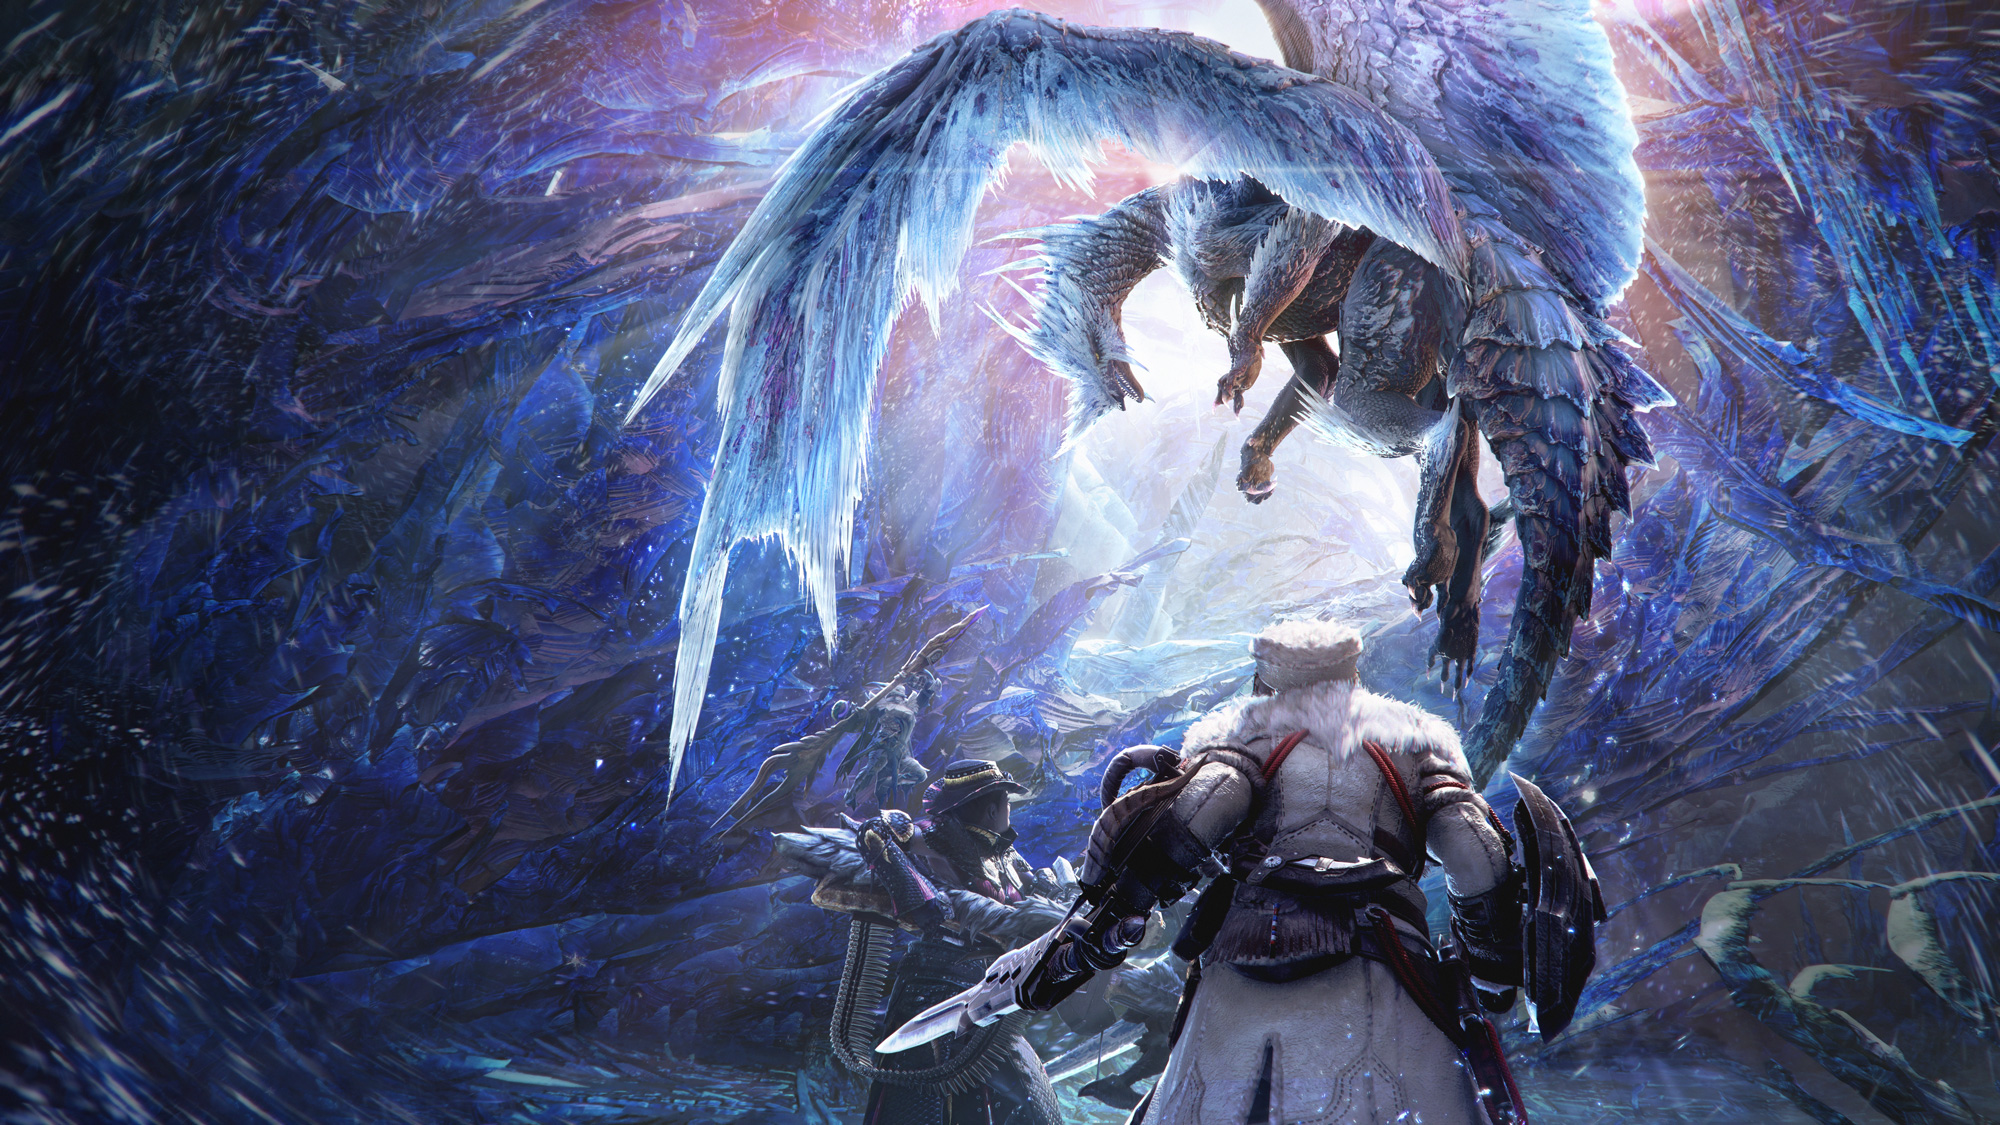 Up To 87% Off For Monster Hunter: World, Resident Evil 2 And Many More On Capcom's Steam Sale